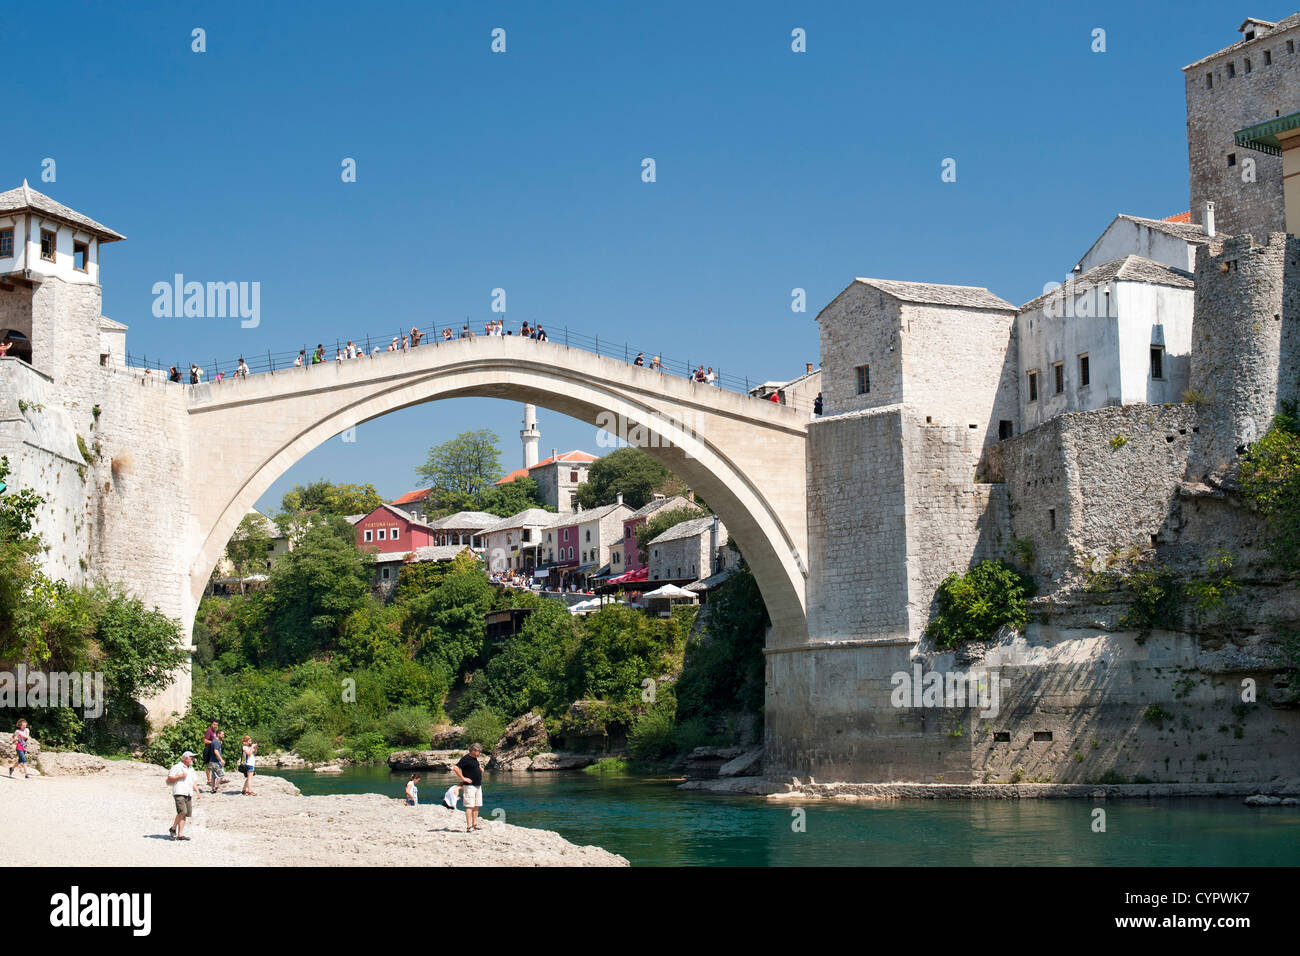 The Stari Most 'Old Bridge' and Neretva River in Mostar in Bosnia-Herzegovina. - Stock Image